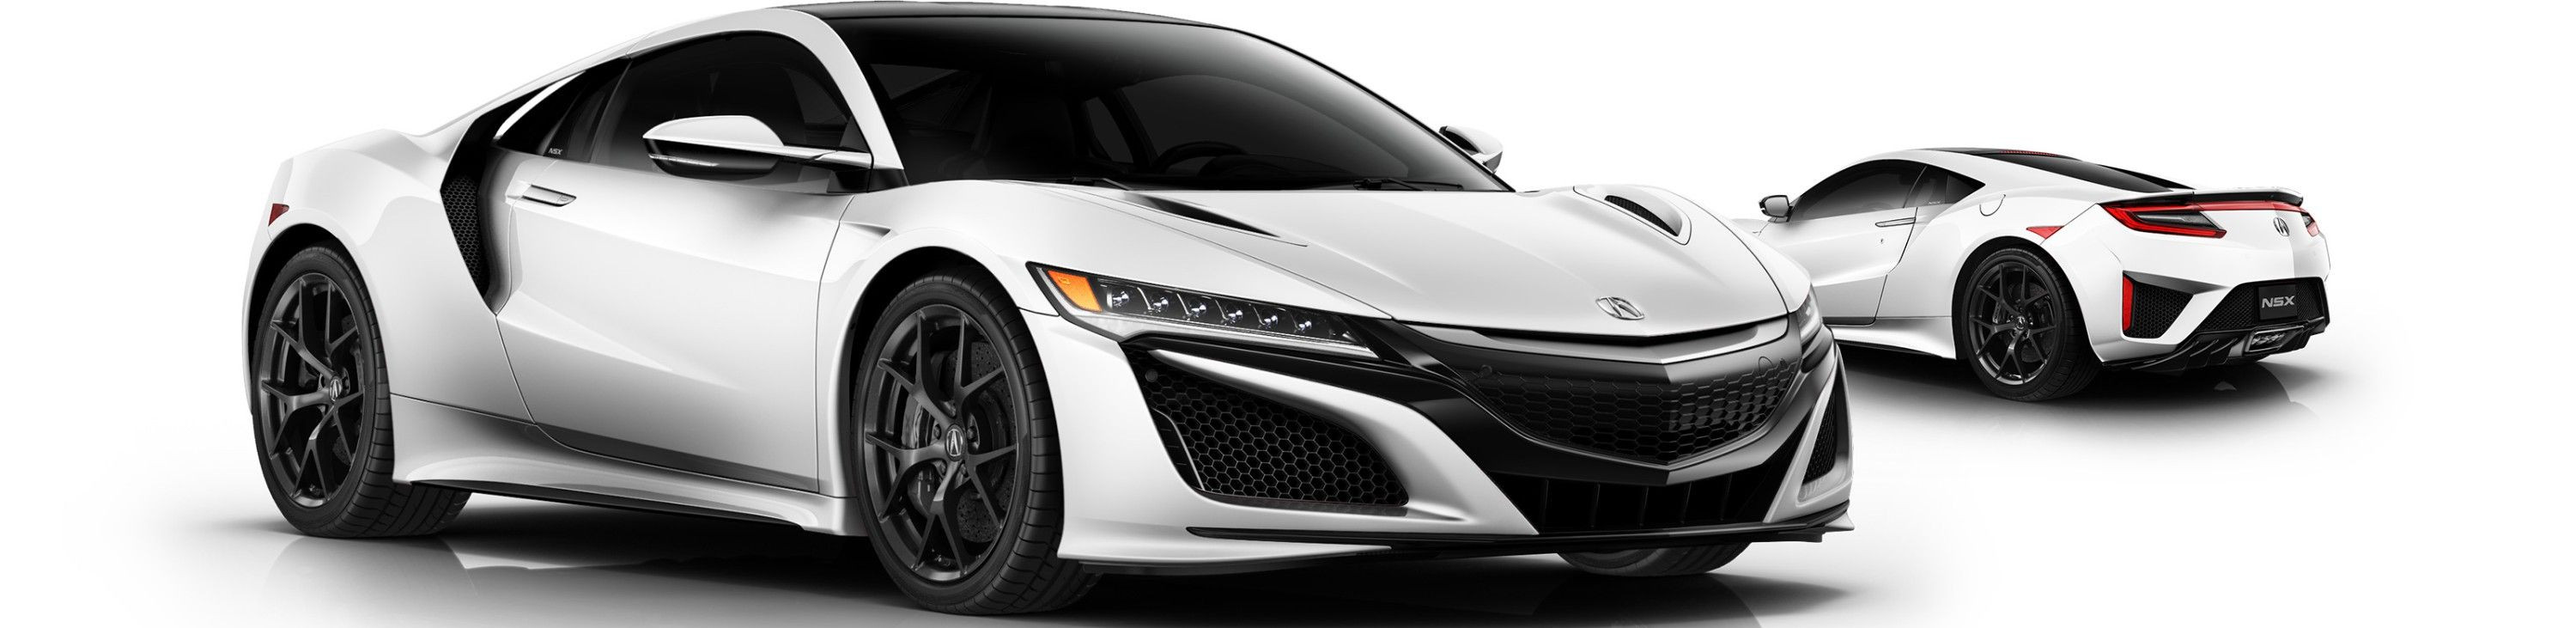 pohanka used cars new 2012 acura nsx concept harvestinc of pohanka used cars new used 2017